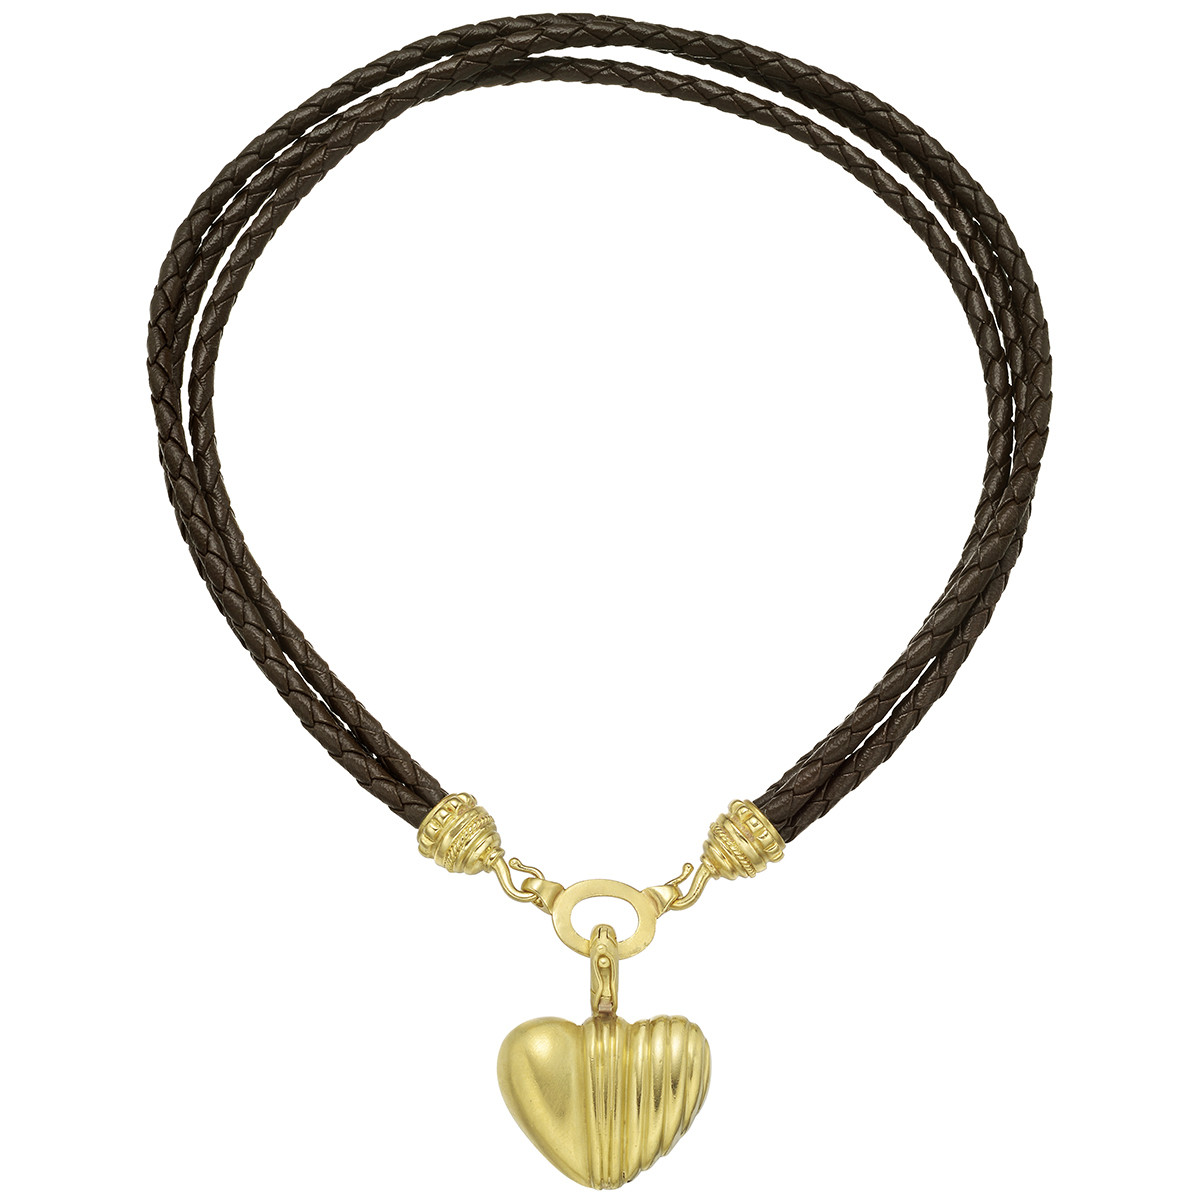 22k Yellow Gold, Diamond & Leather Heart Pendant